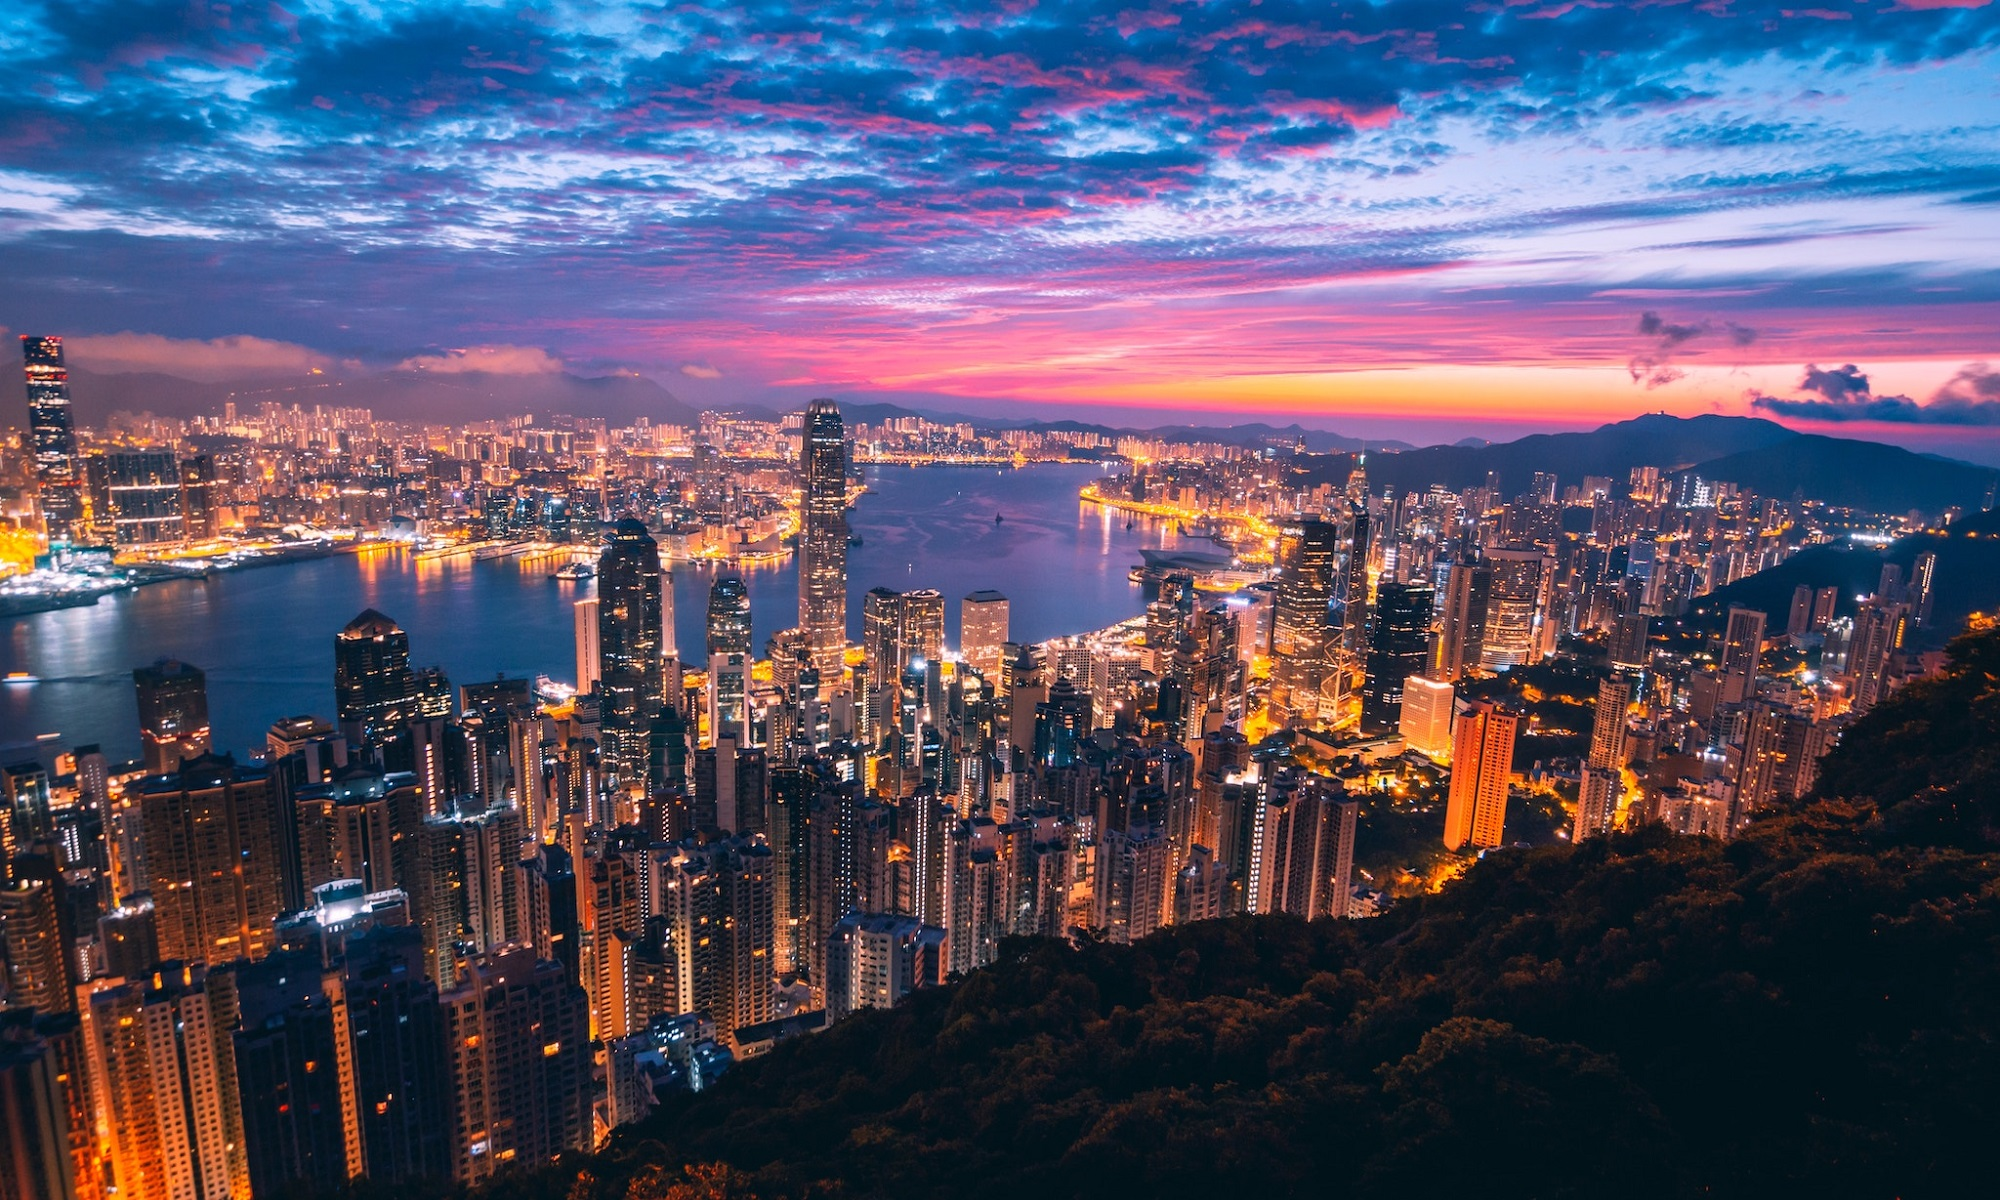 Panorama view of Hong Kong bay from Victoria Peak summit at sunset.